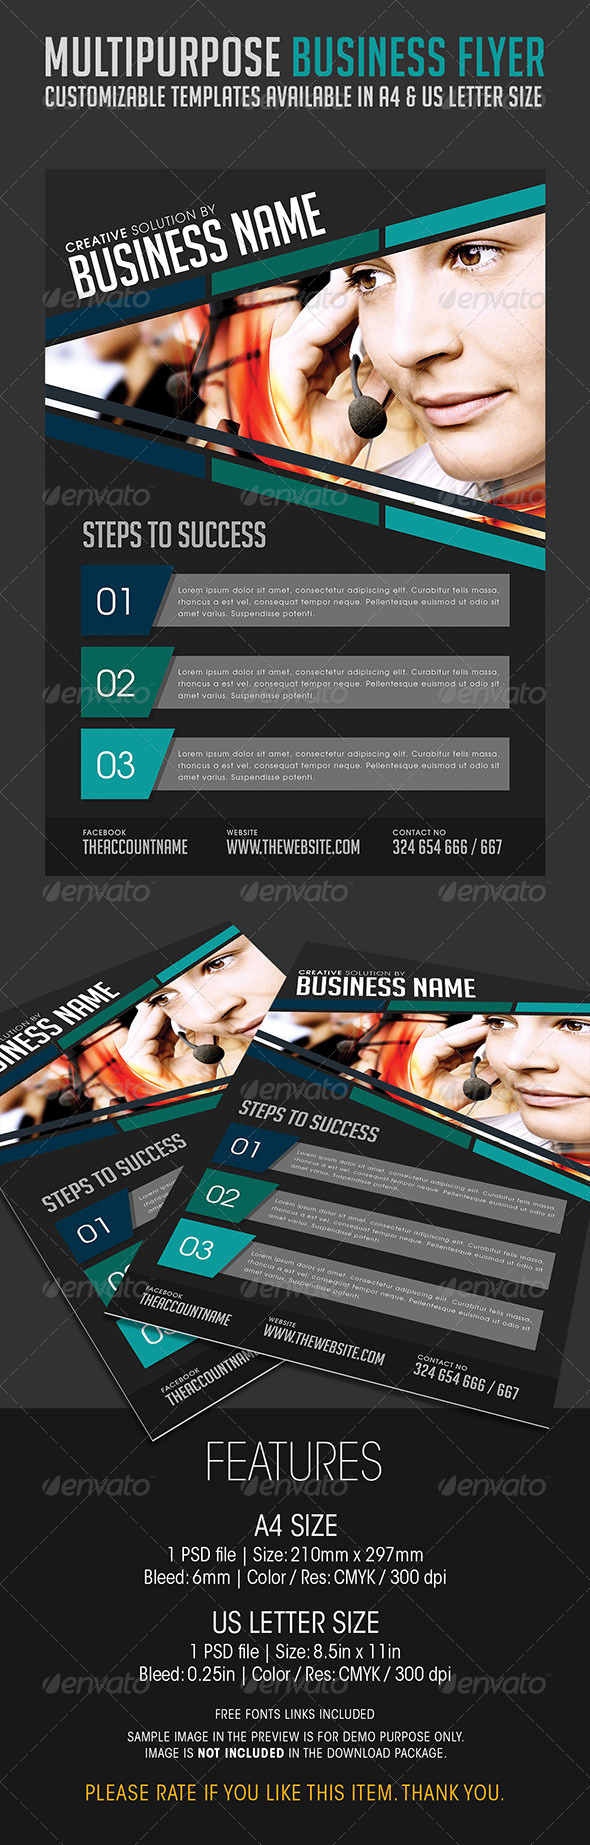 Multipurpose Business Flyer 02 - Corporate Flyers